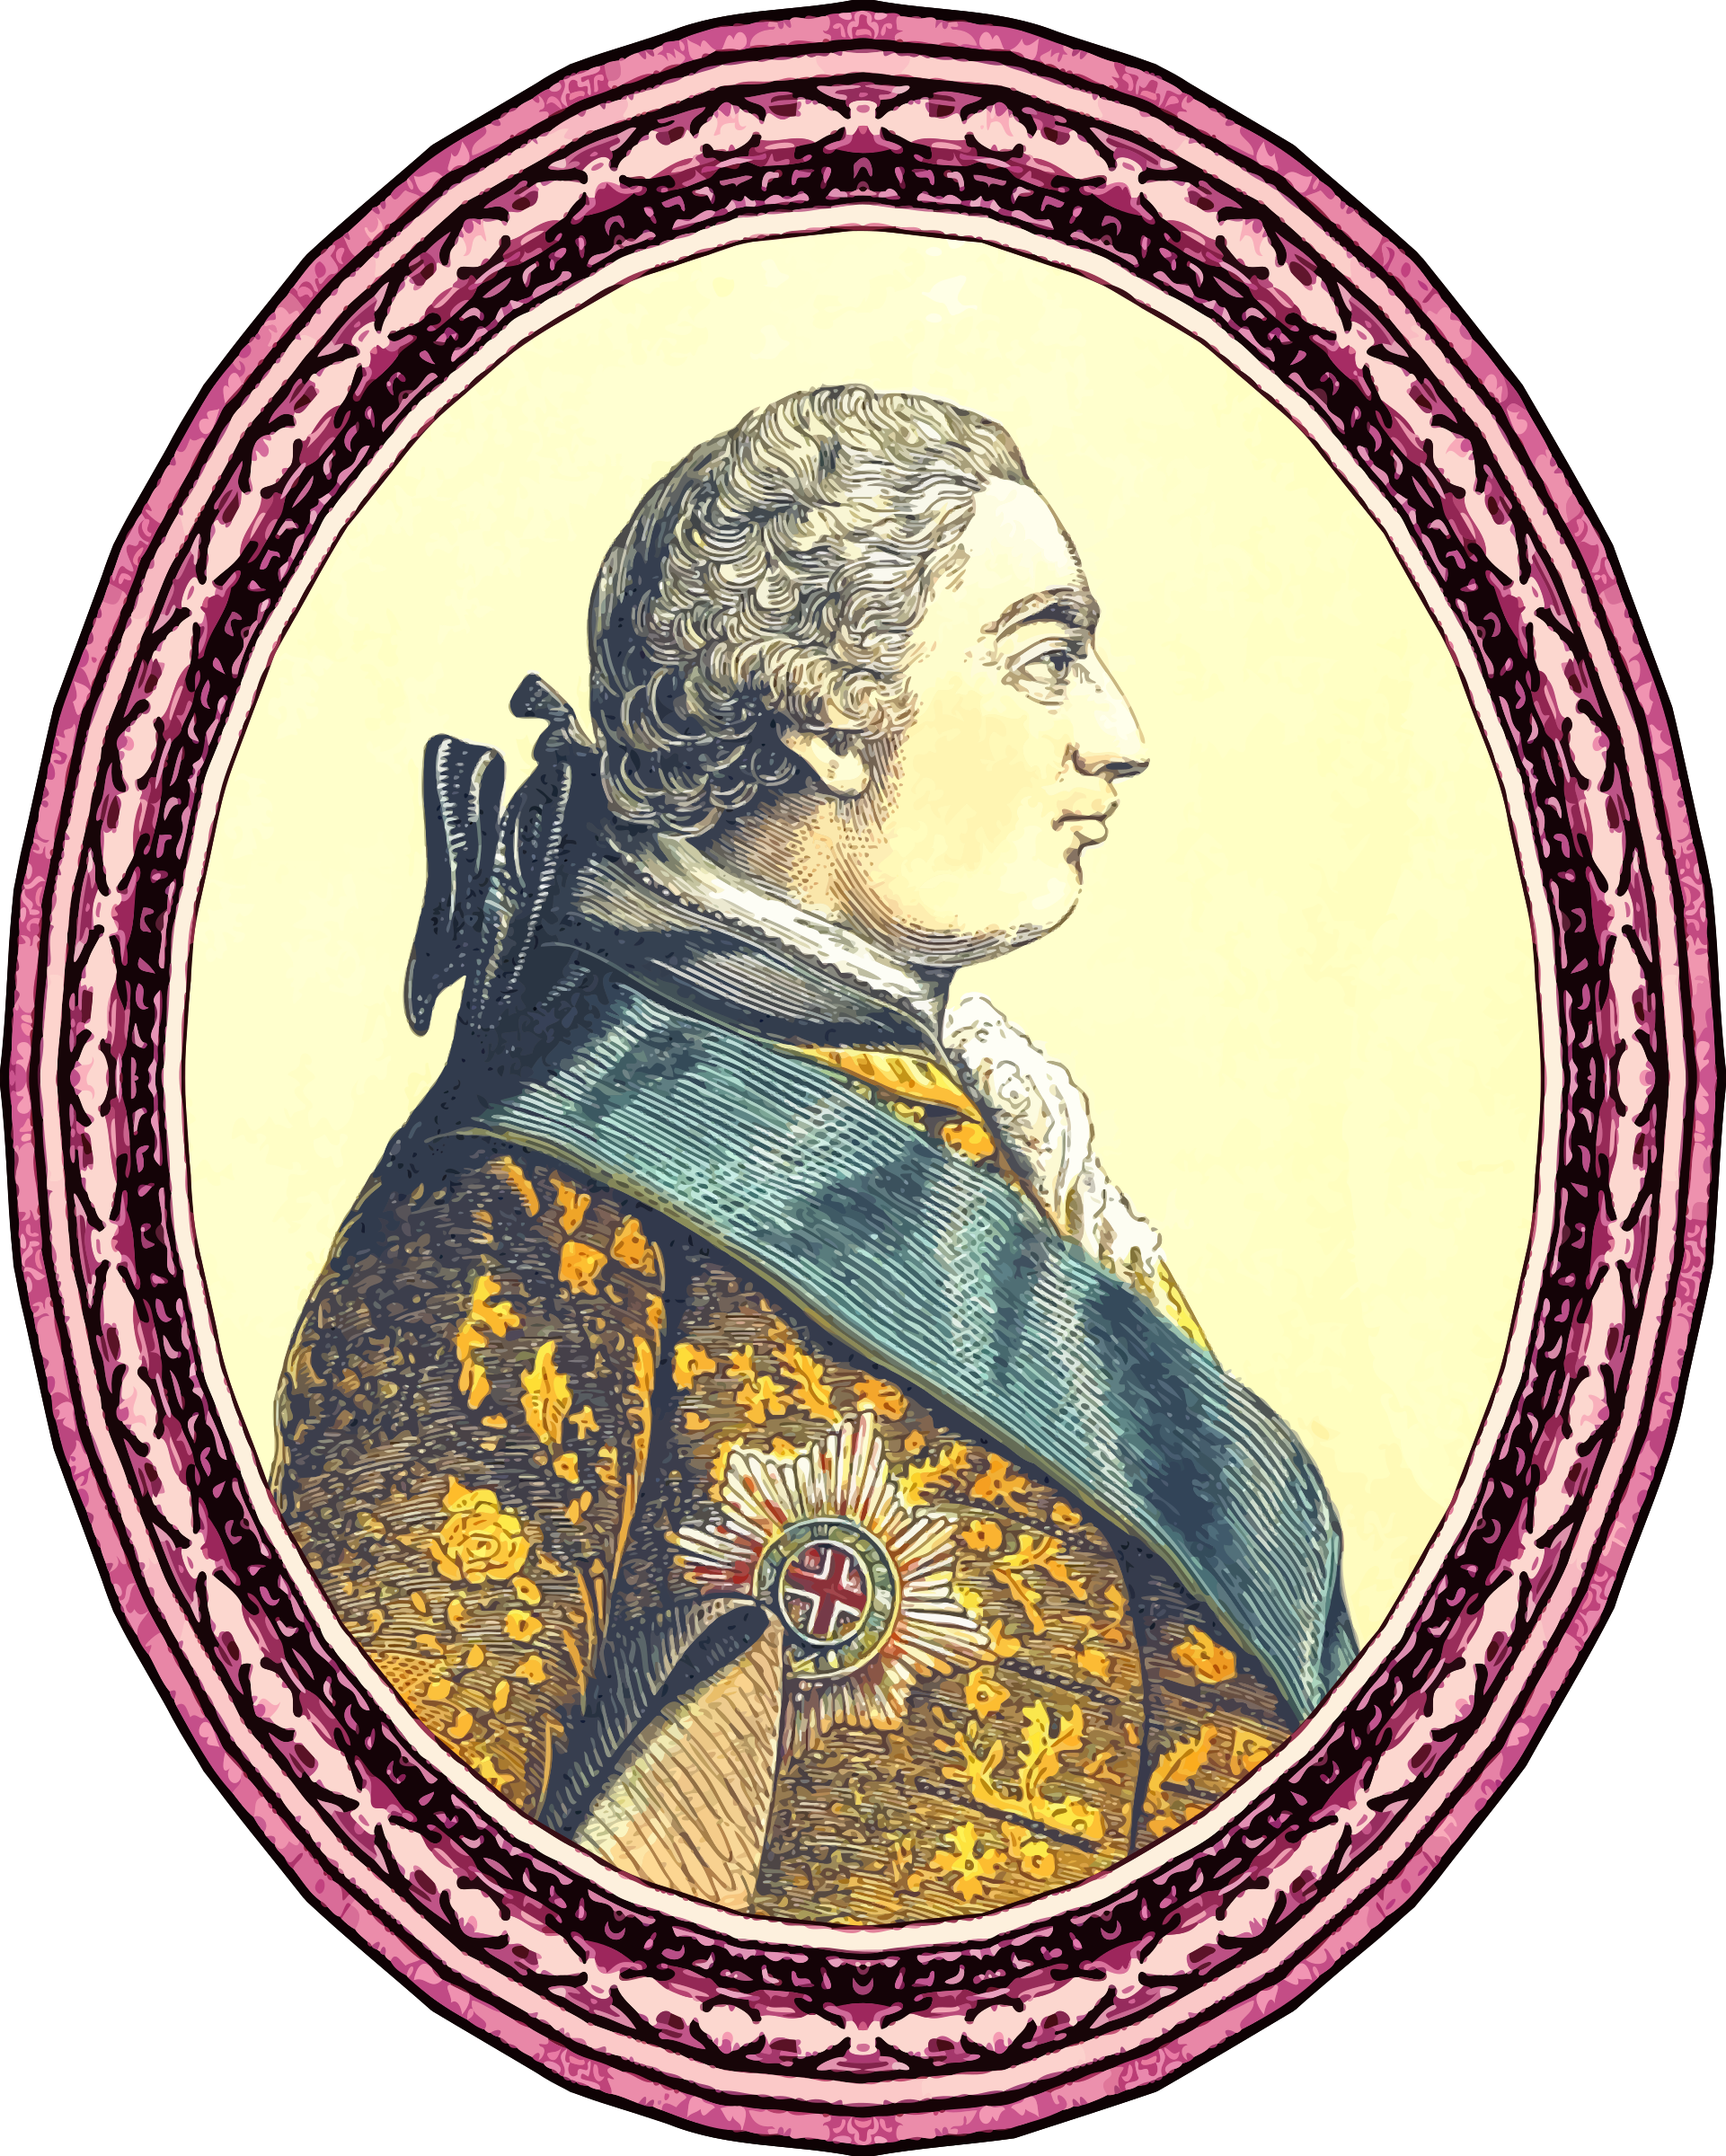 King George III (framed) by Firkin